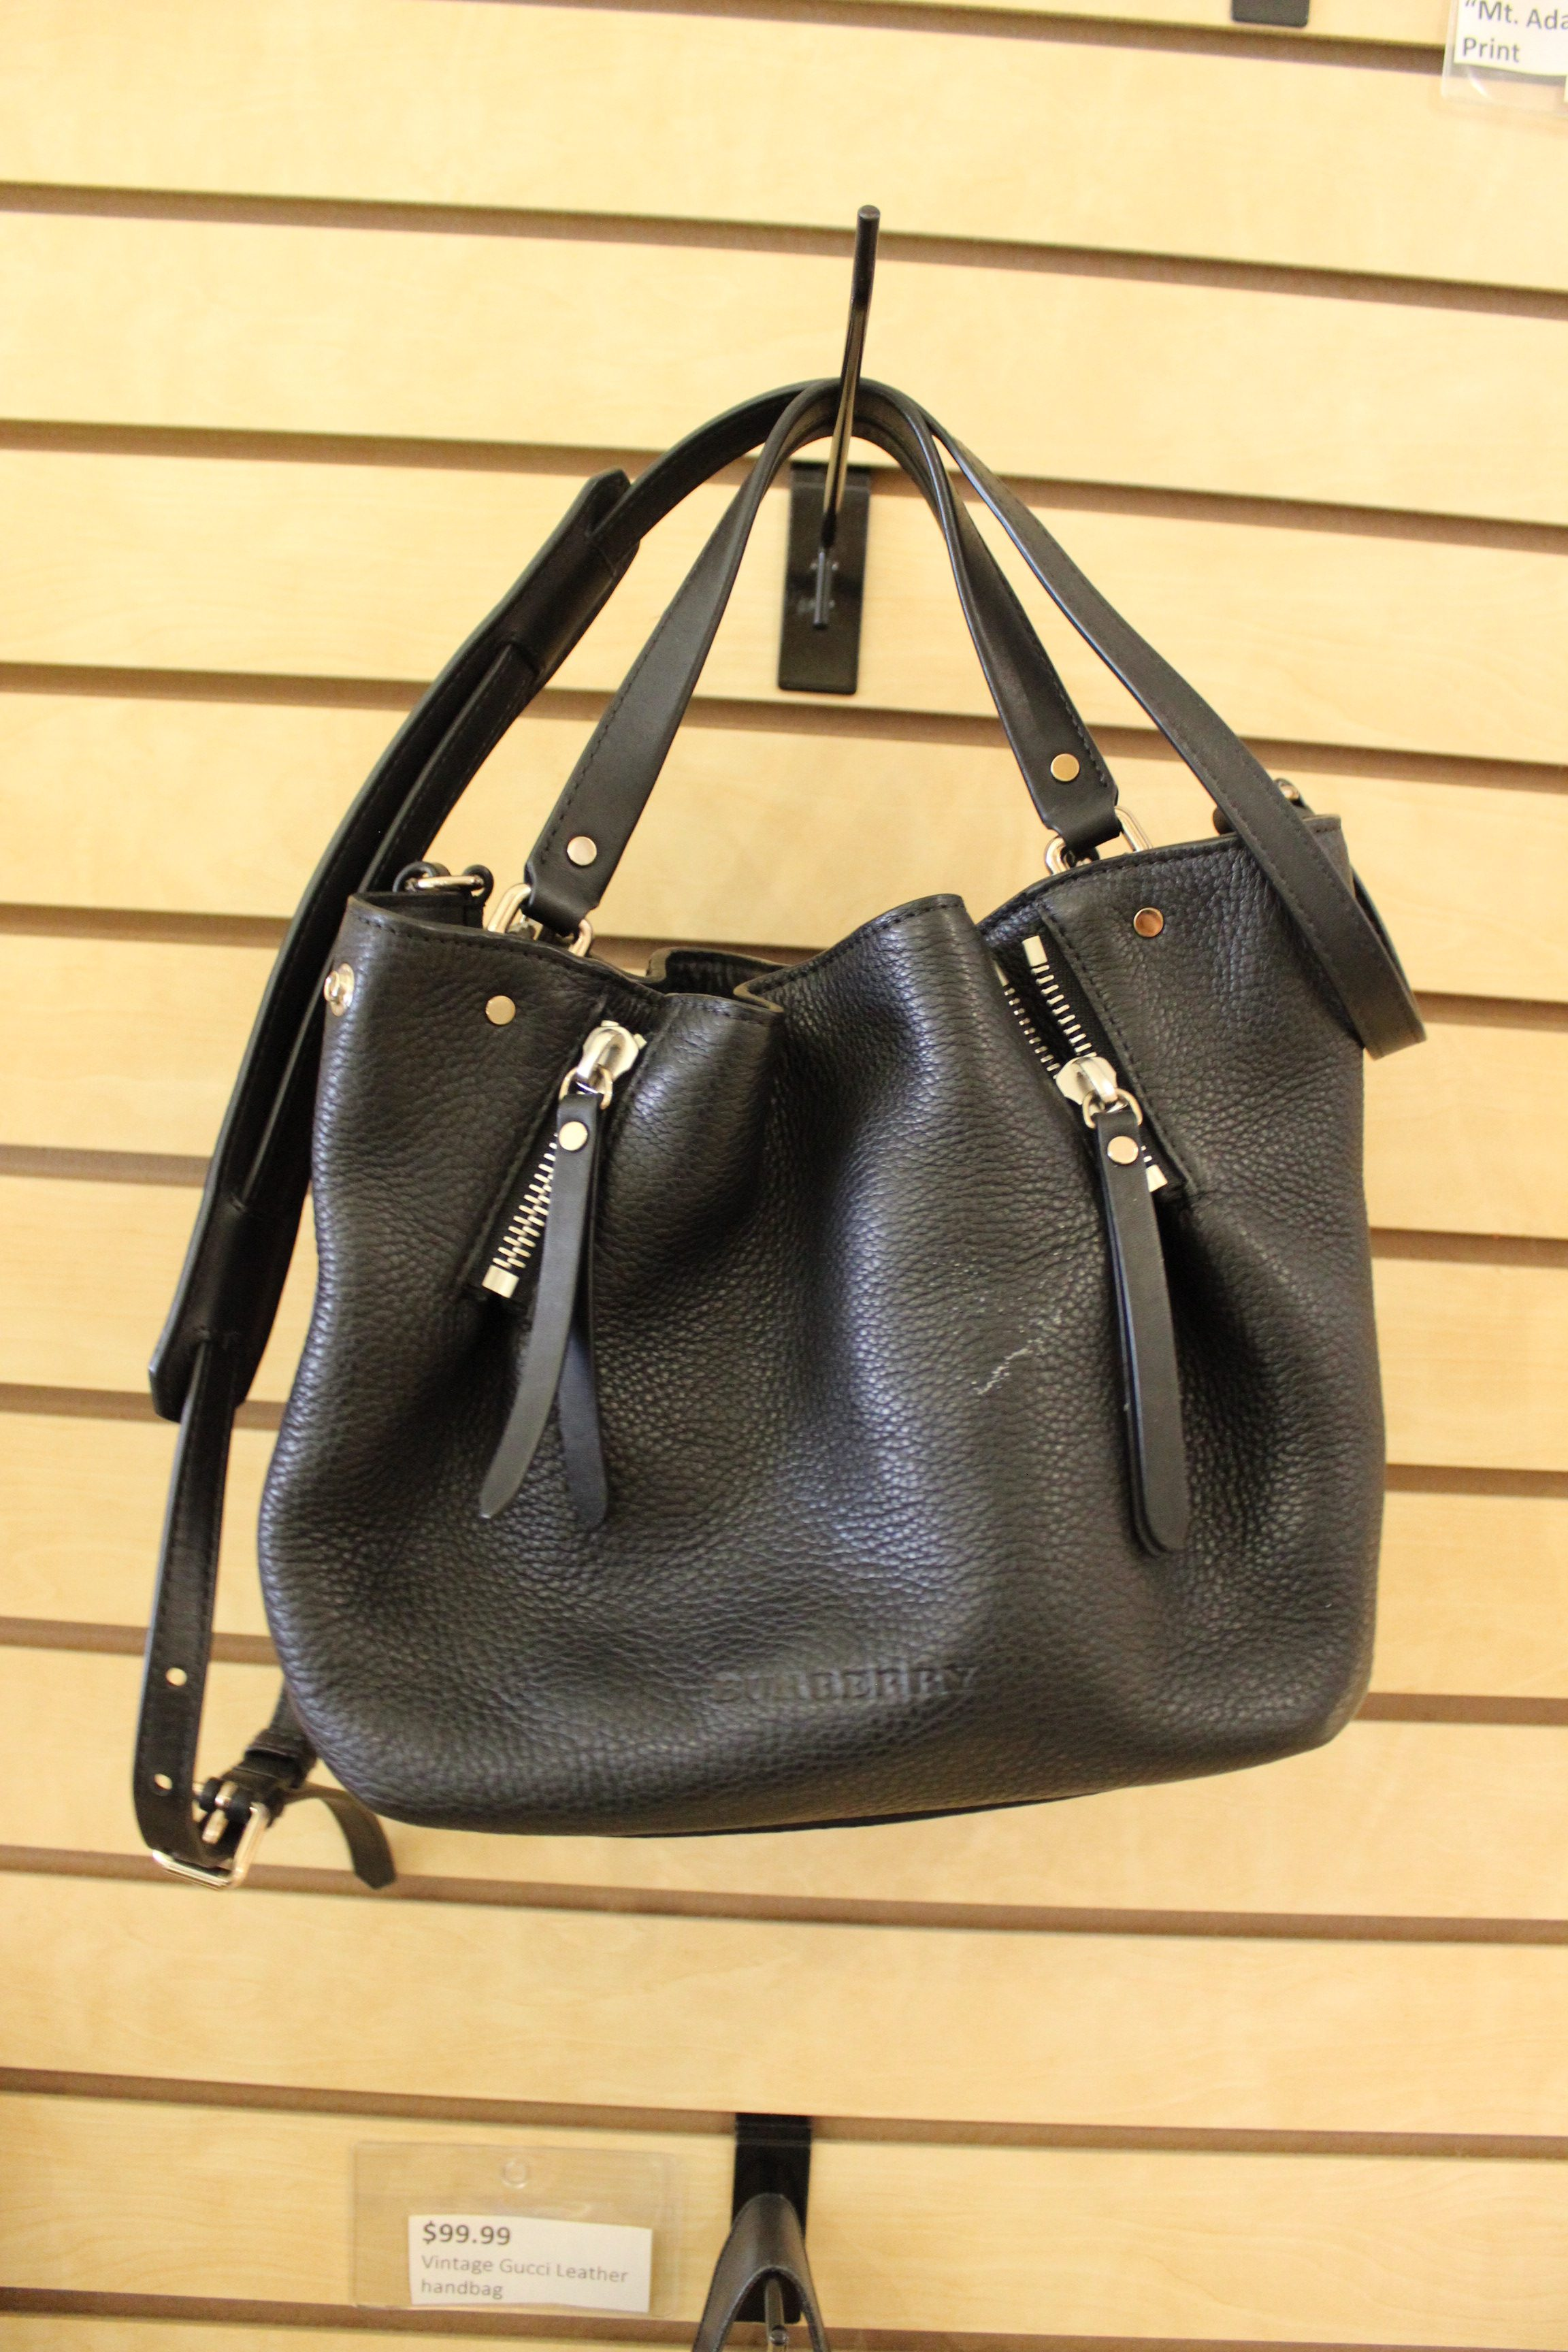 7af009ef5d6492 Used Burberry Purse For Sale | Stanford Center for Opportunity ...